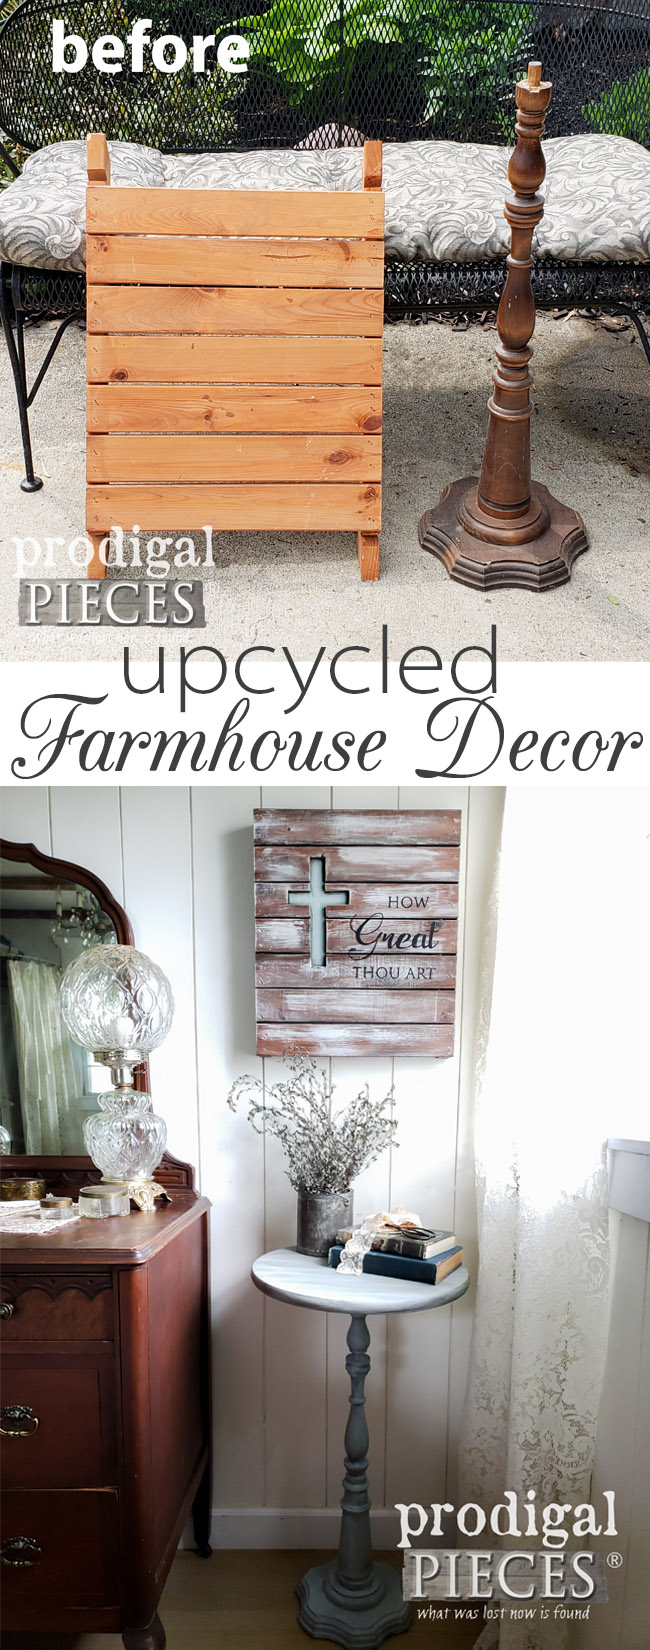 From curbside and the thrift store comes these fun pieces that create upcycled farmhouse decor. Head to Prodigal Pieces for the DIY inspiration. | prodigalpieces.com #prodigalpieces #diy #homedecor #shopping #farmhouse